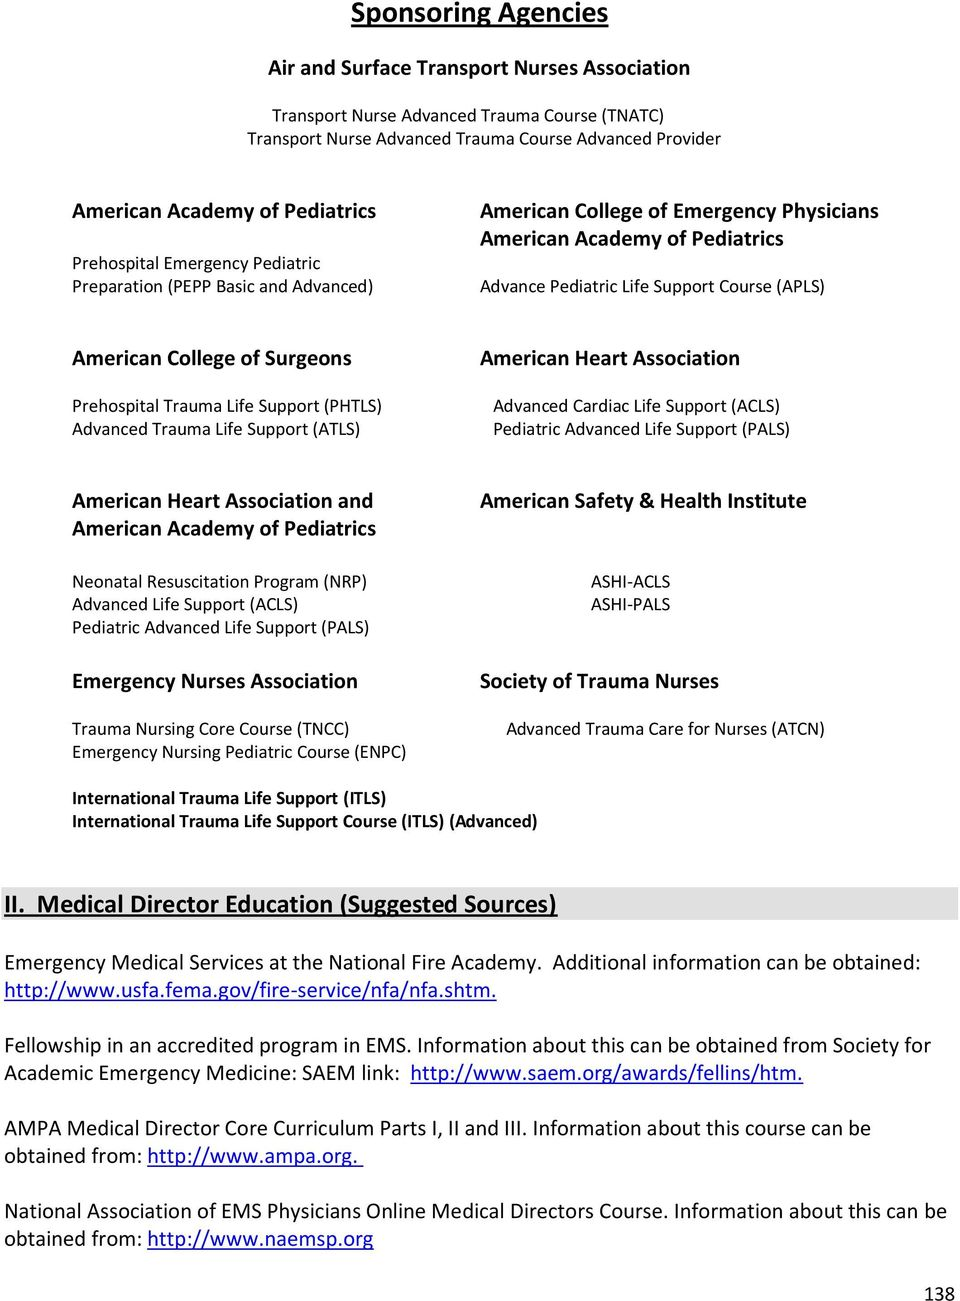 Prehospital Trauma Life Support (PHTLS) Advanced Trauma Life Support (ATLS) American Heart Association Advanced Cardiac Life Support (ACLS) Pediatric Advanced Life Support (P) American Heart